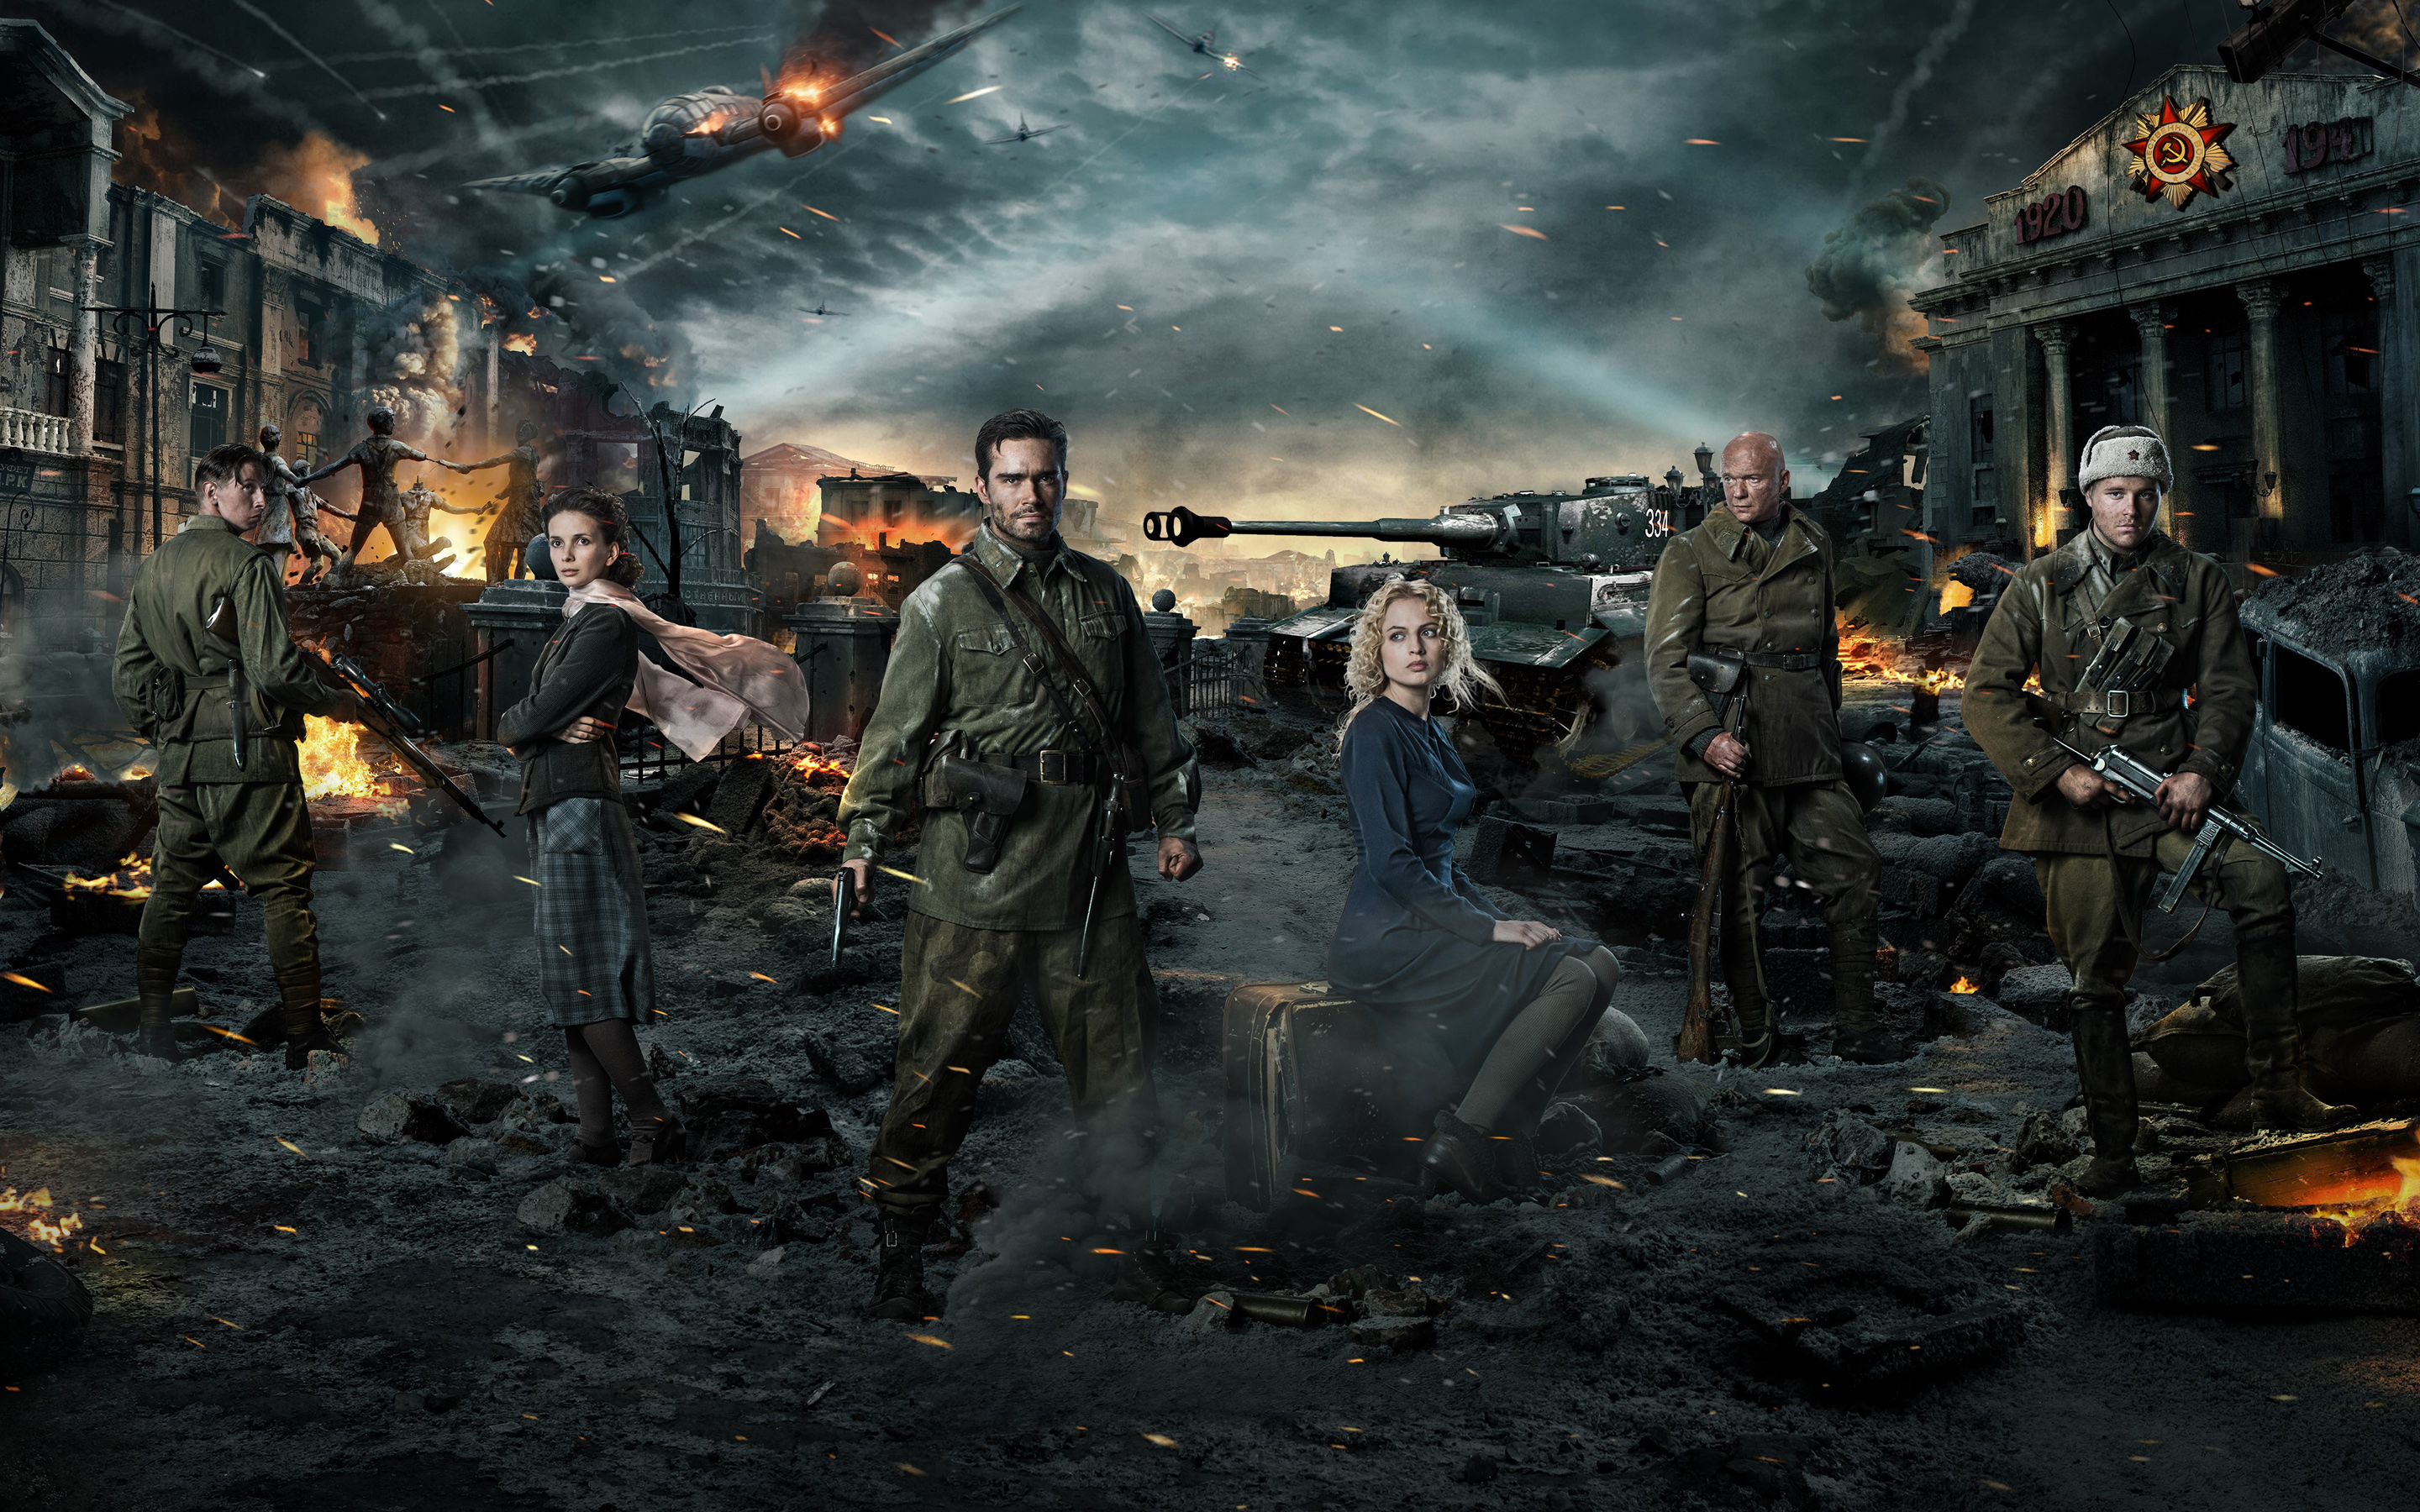 Stalingrad Movie Wallpapers HD Wallpapers 2880x1800